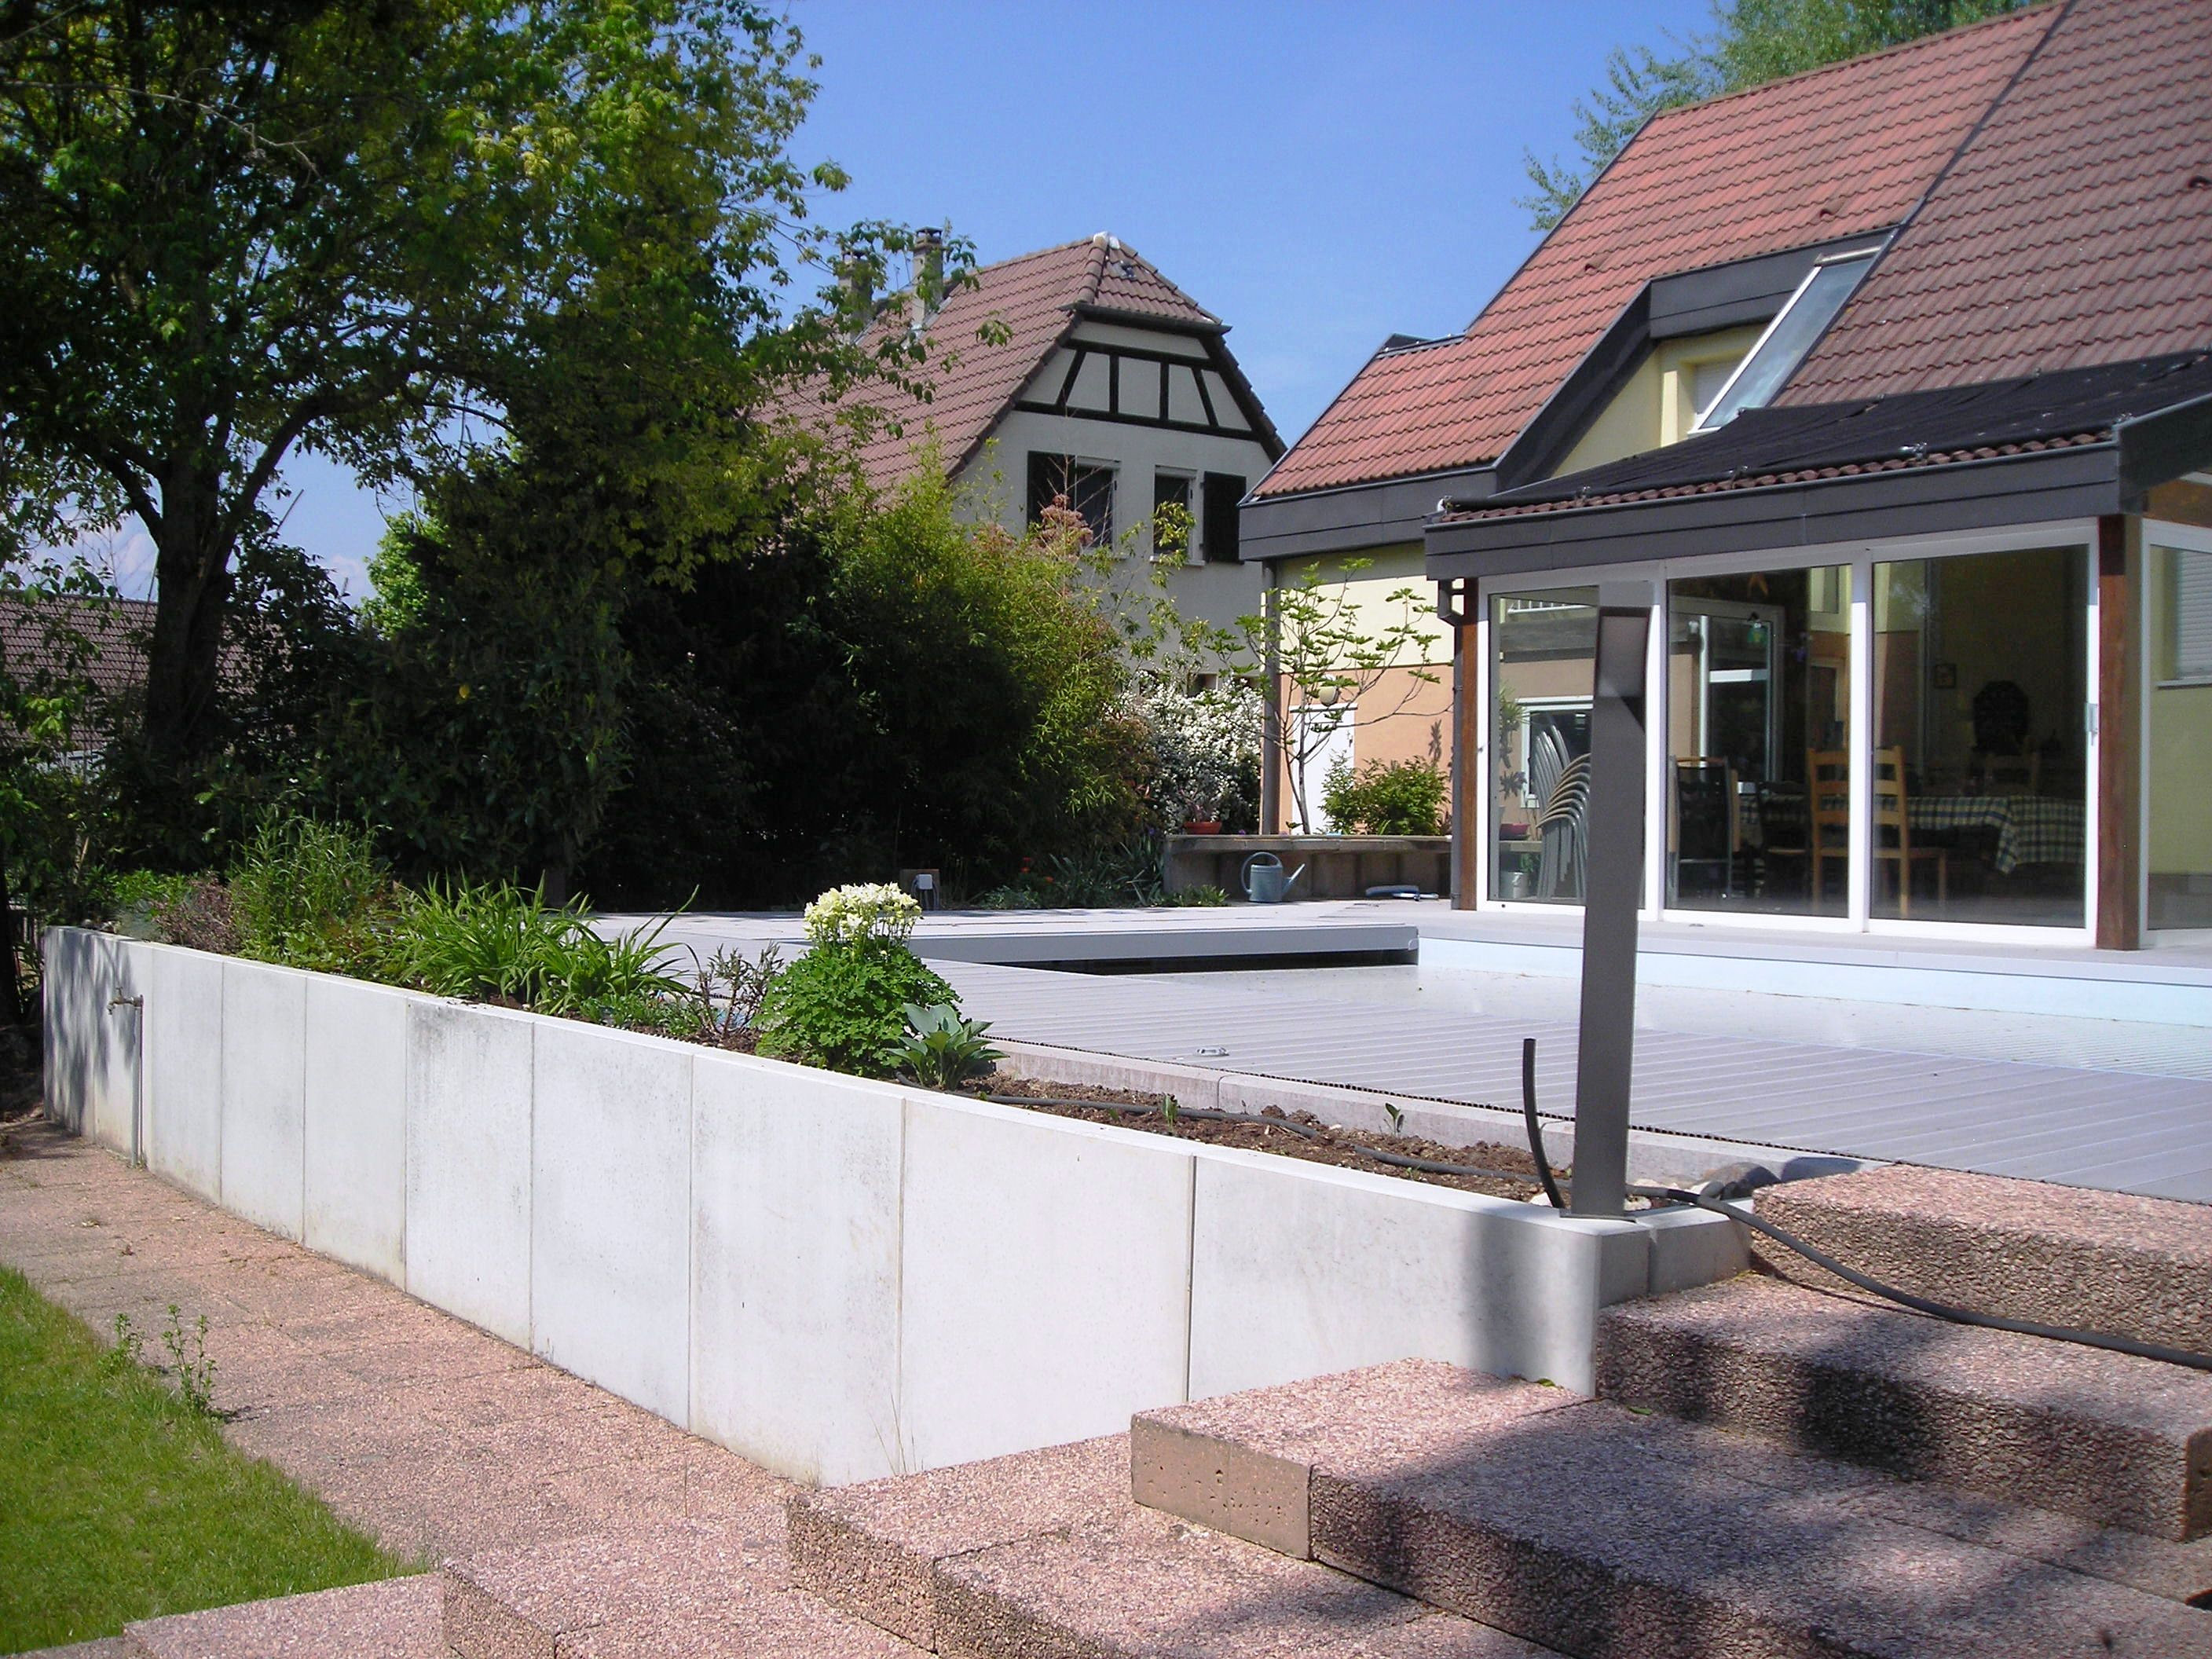 Europavage am nagement ext rieur paysagiste terrasse for Mur de galet exterieur